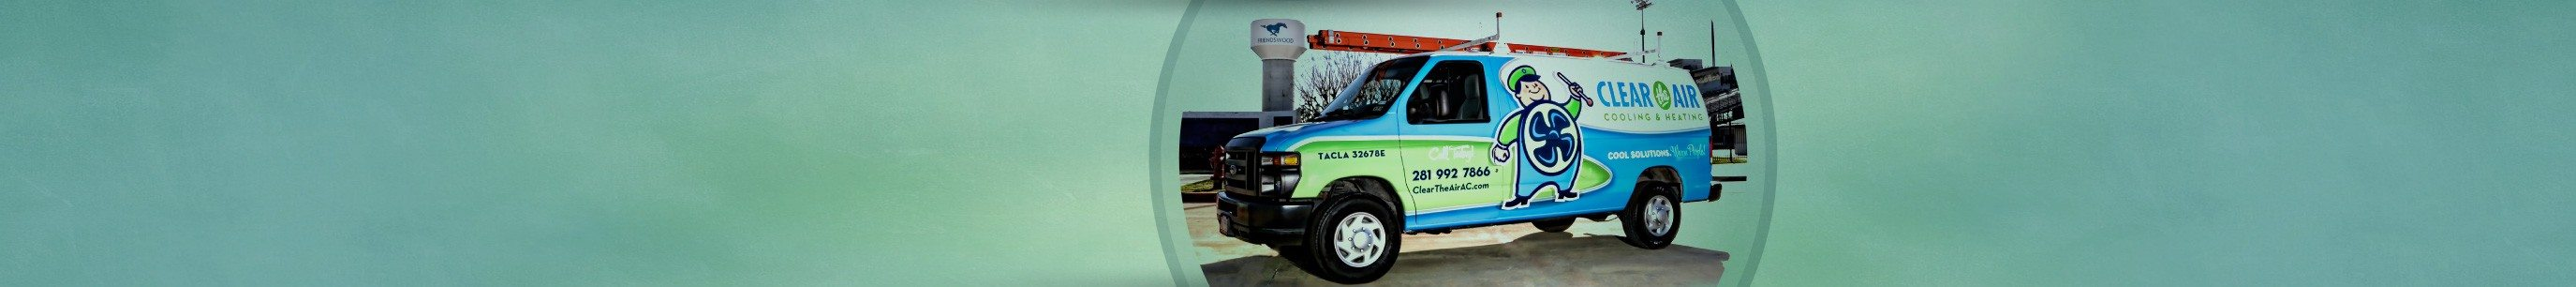 HVAC services with the experts at Clear the Air - Houston, TX air conditioning company.